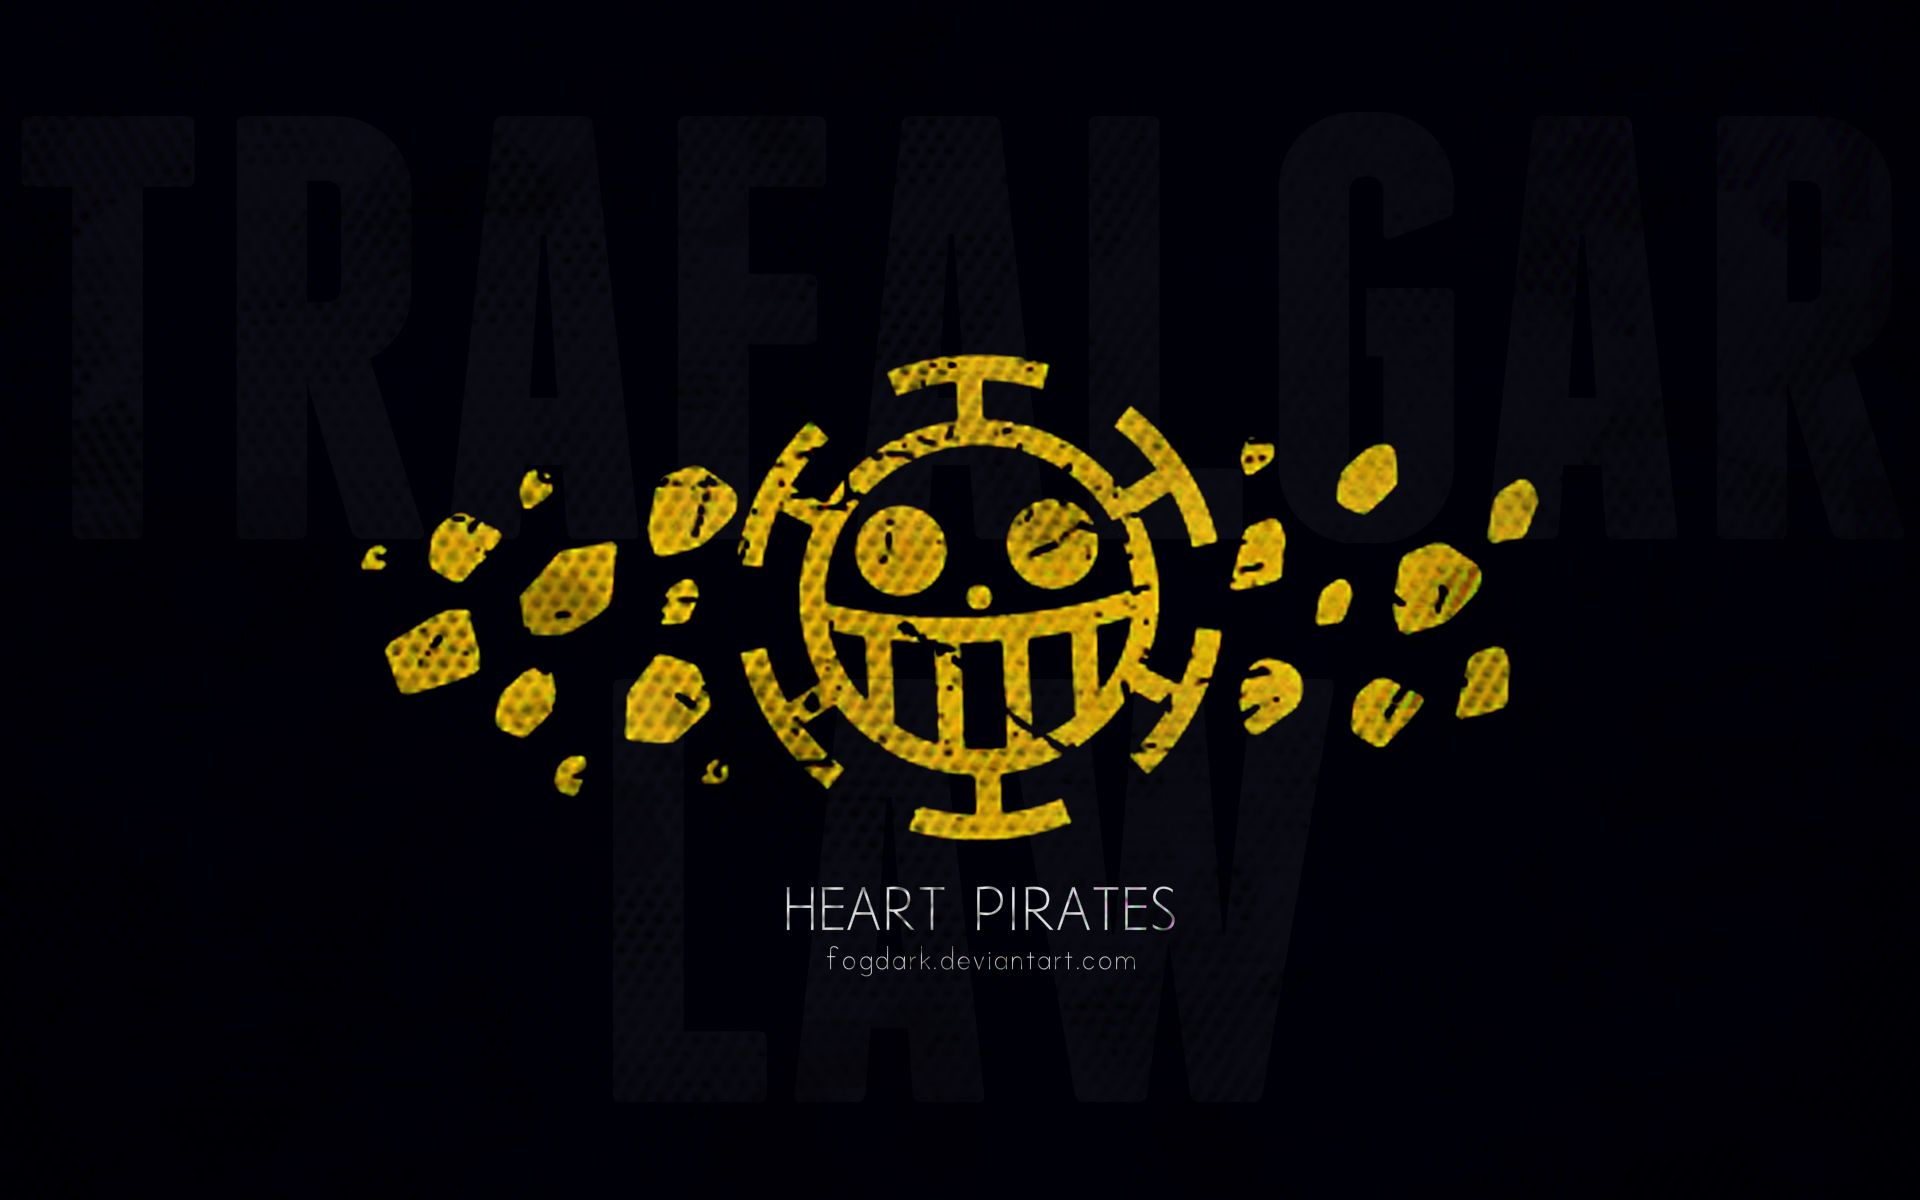 Minimalistic Heart Pirates One Piece Wallpaper By Fogdark Gambar